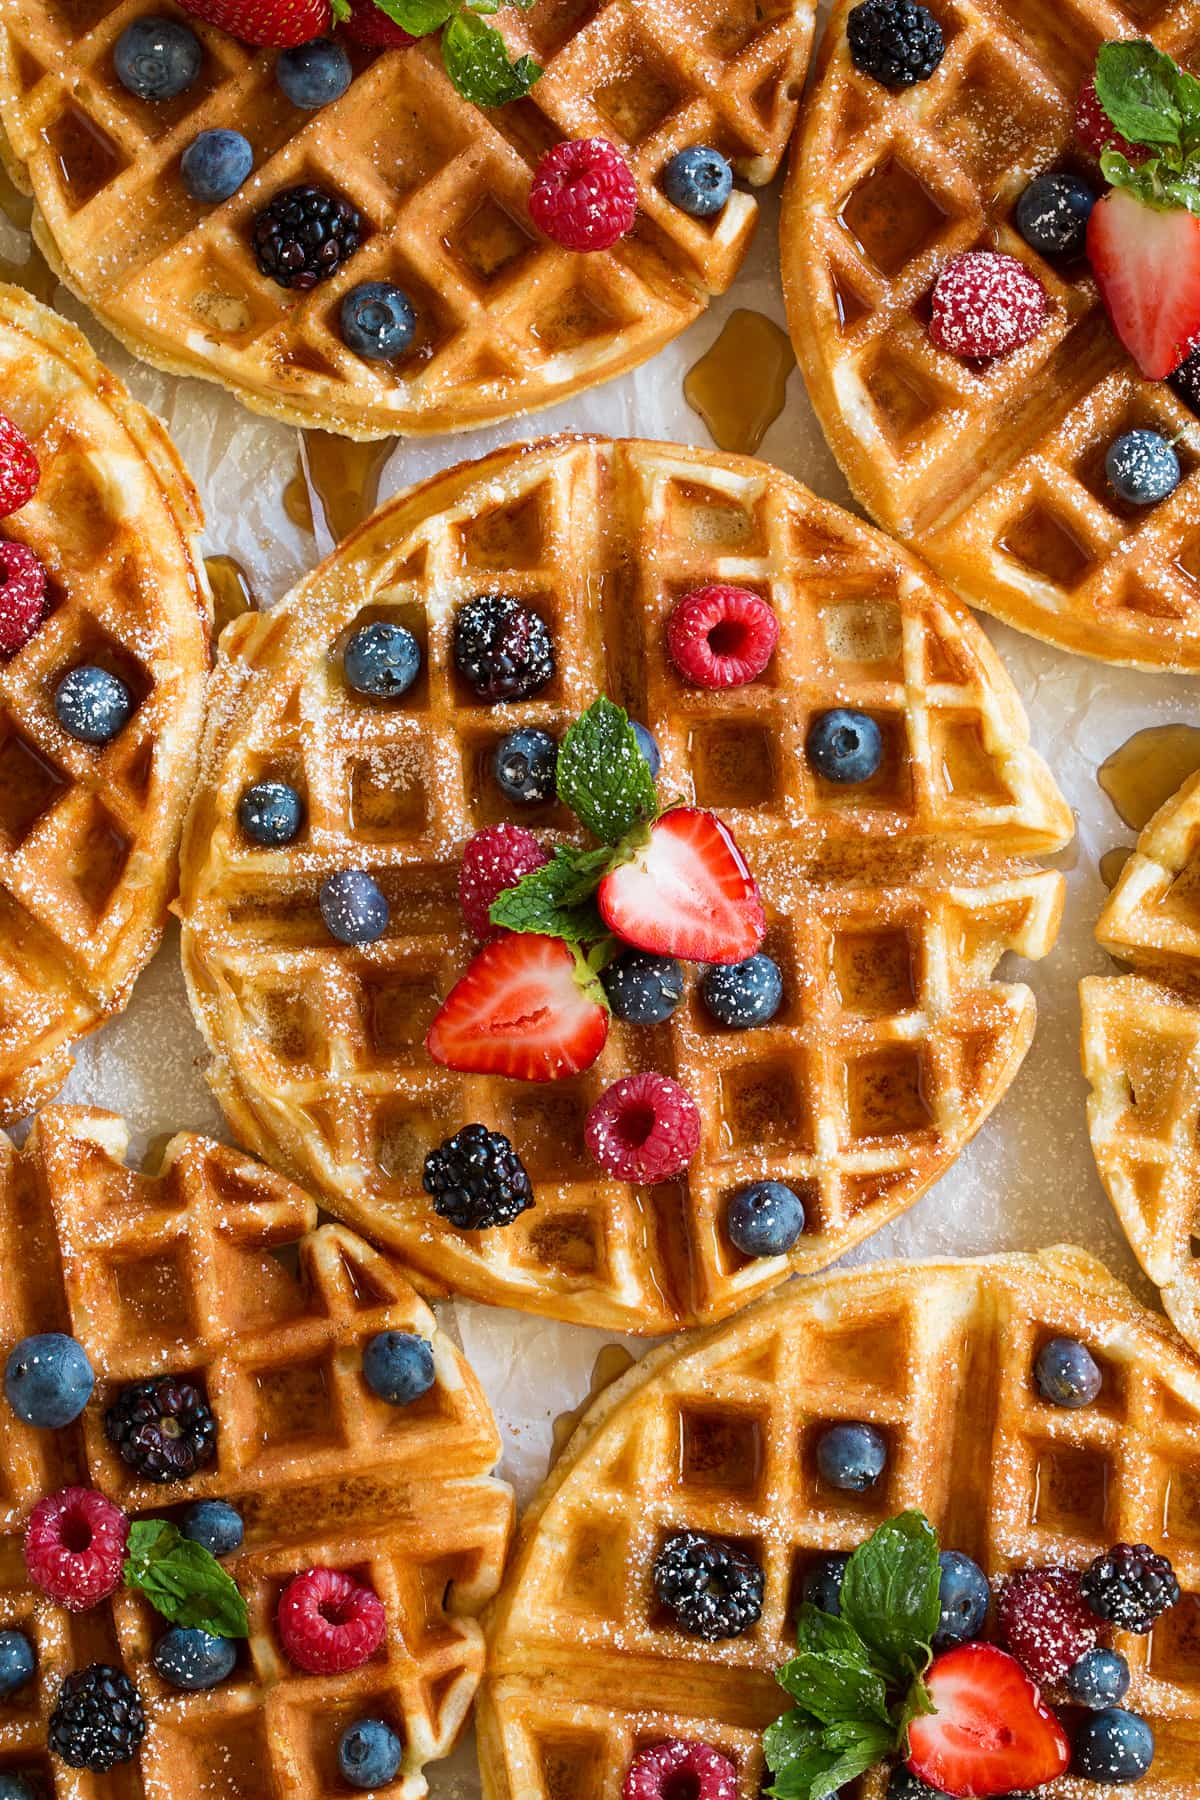 Close up image of Belgian waffles.